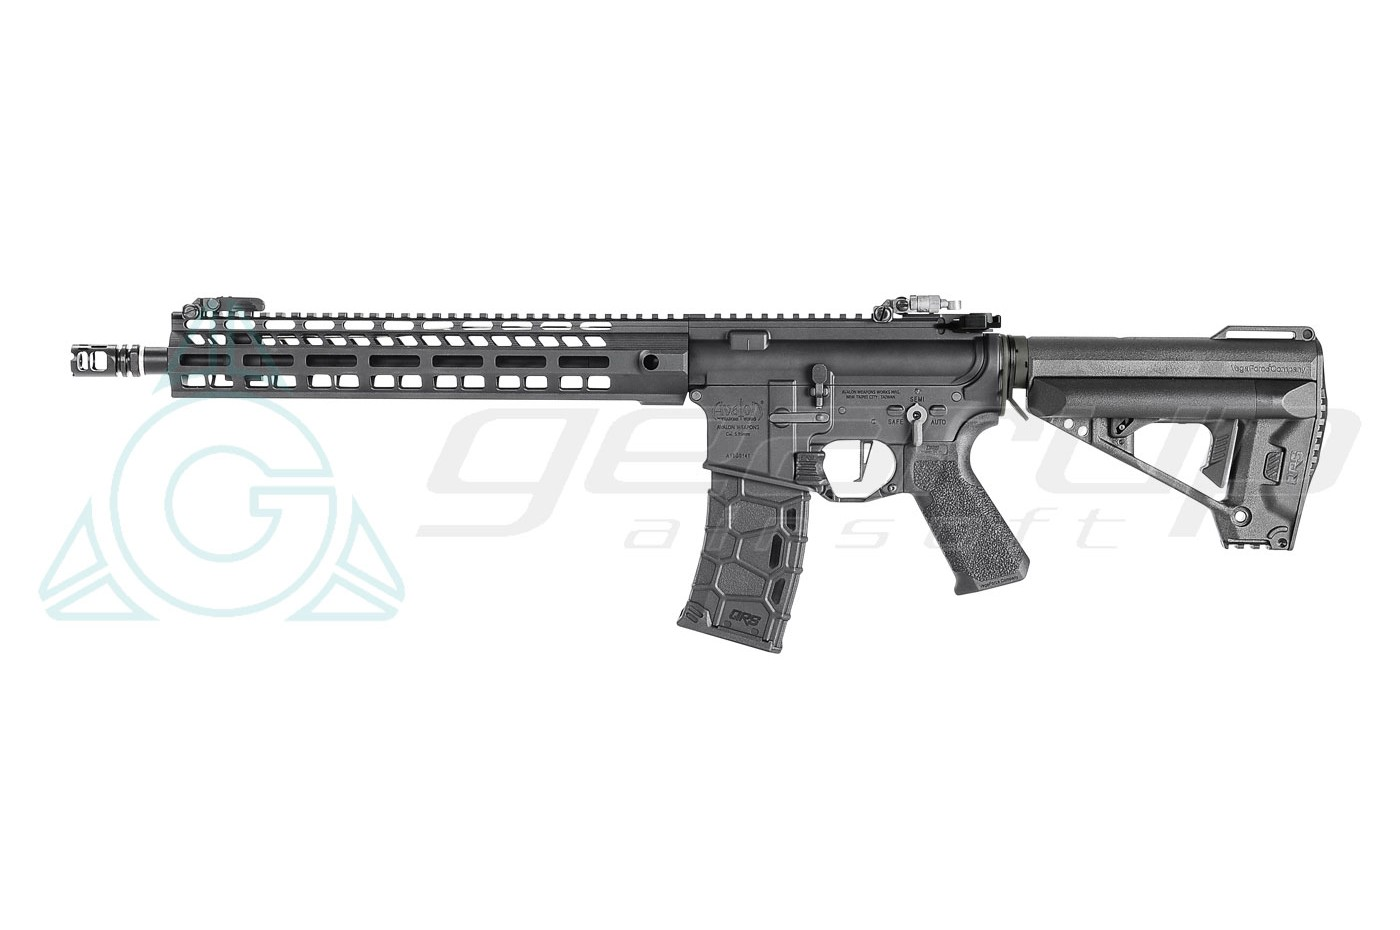 VFC AVALON SABER CARBINE AEG(Black) (No Case)